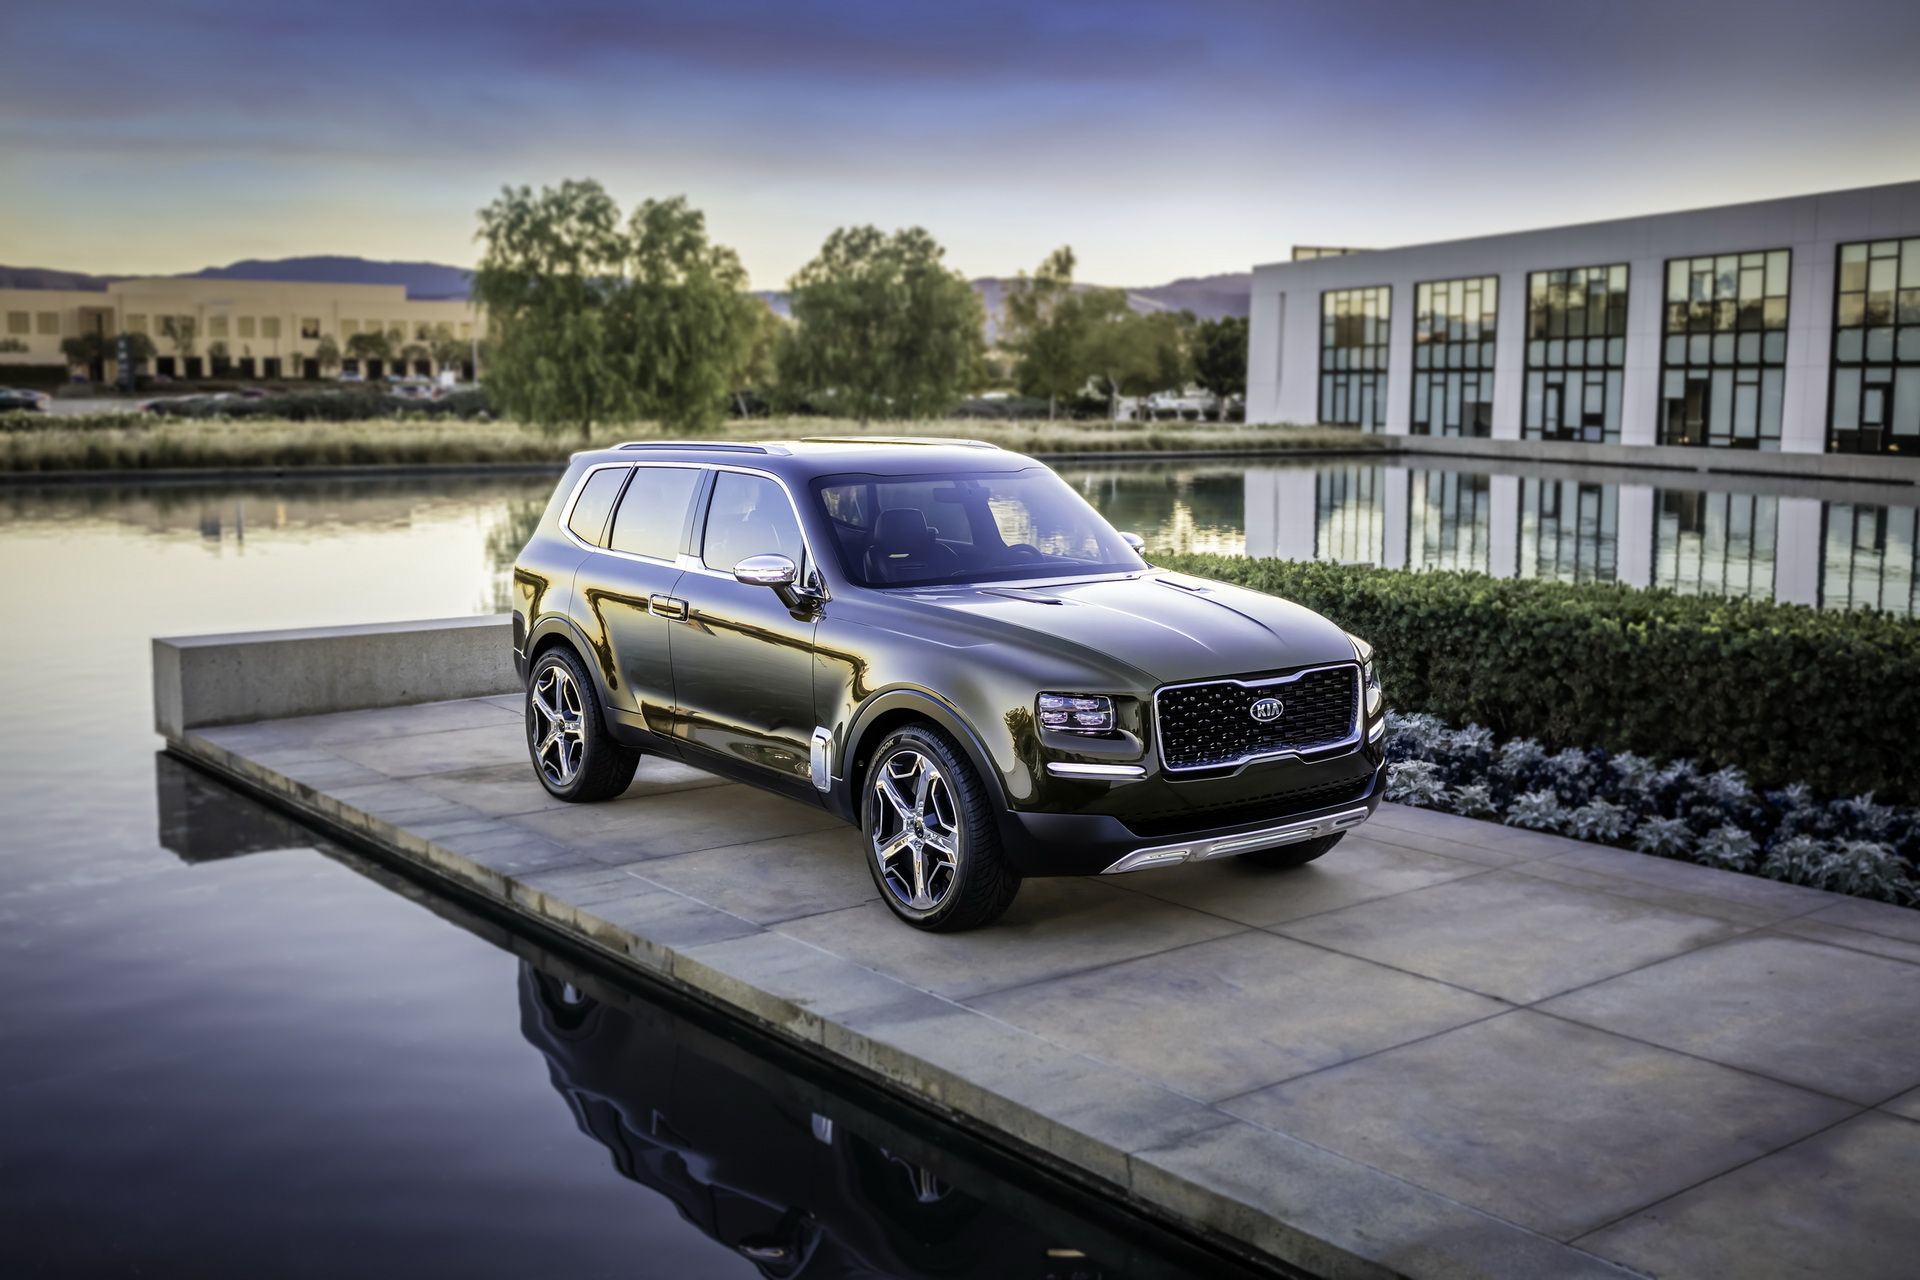 kia-telluride-production-4.jpg